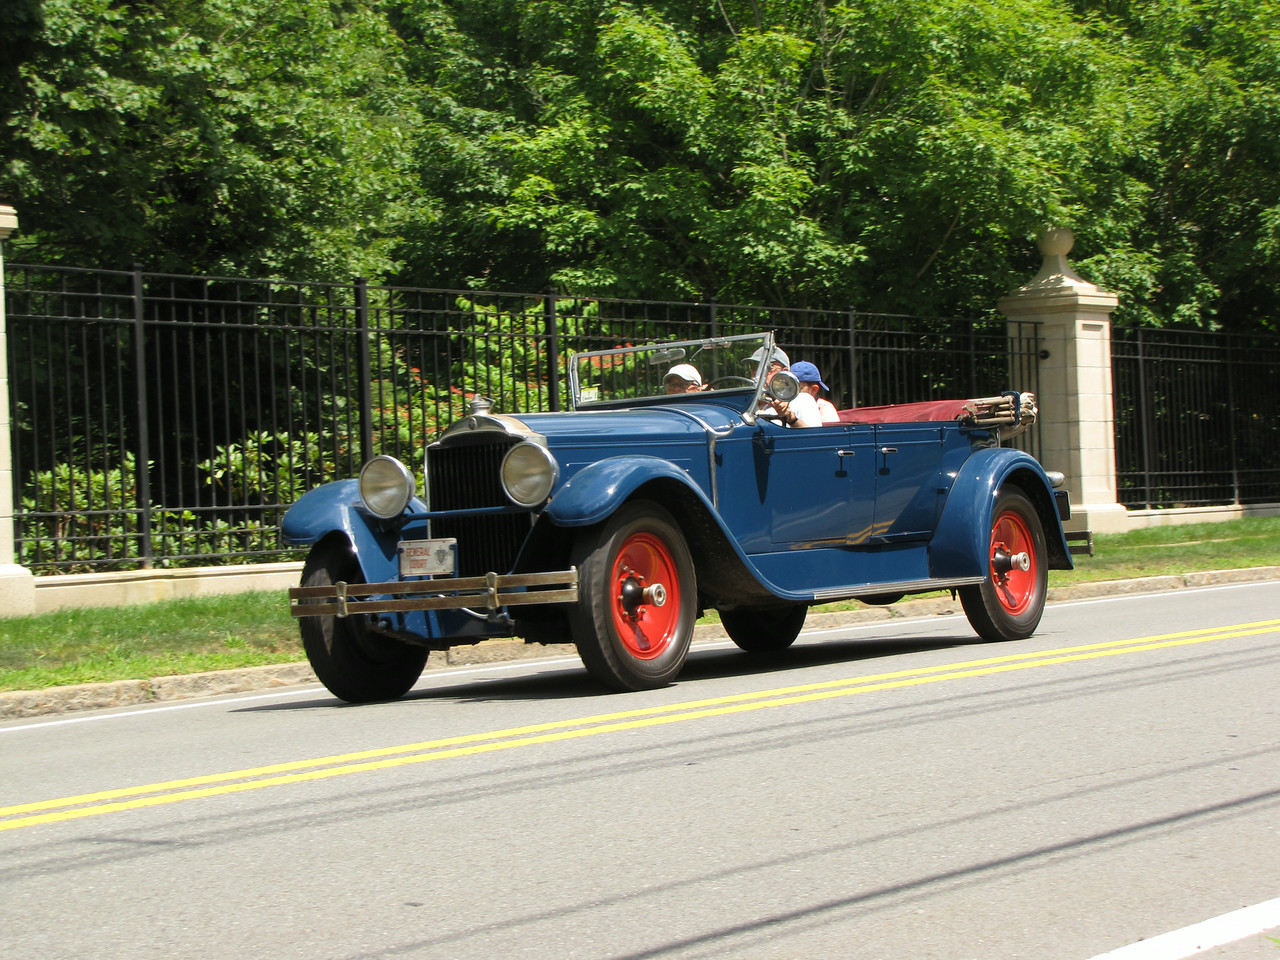 Packard or Pierce-Arrow